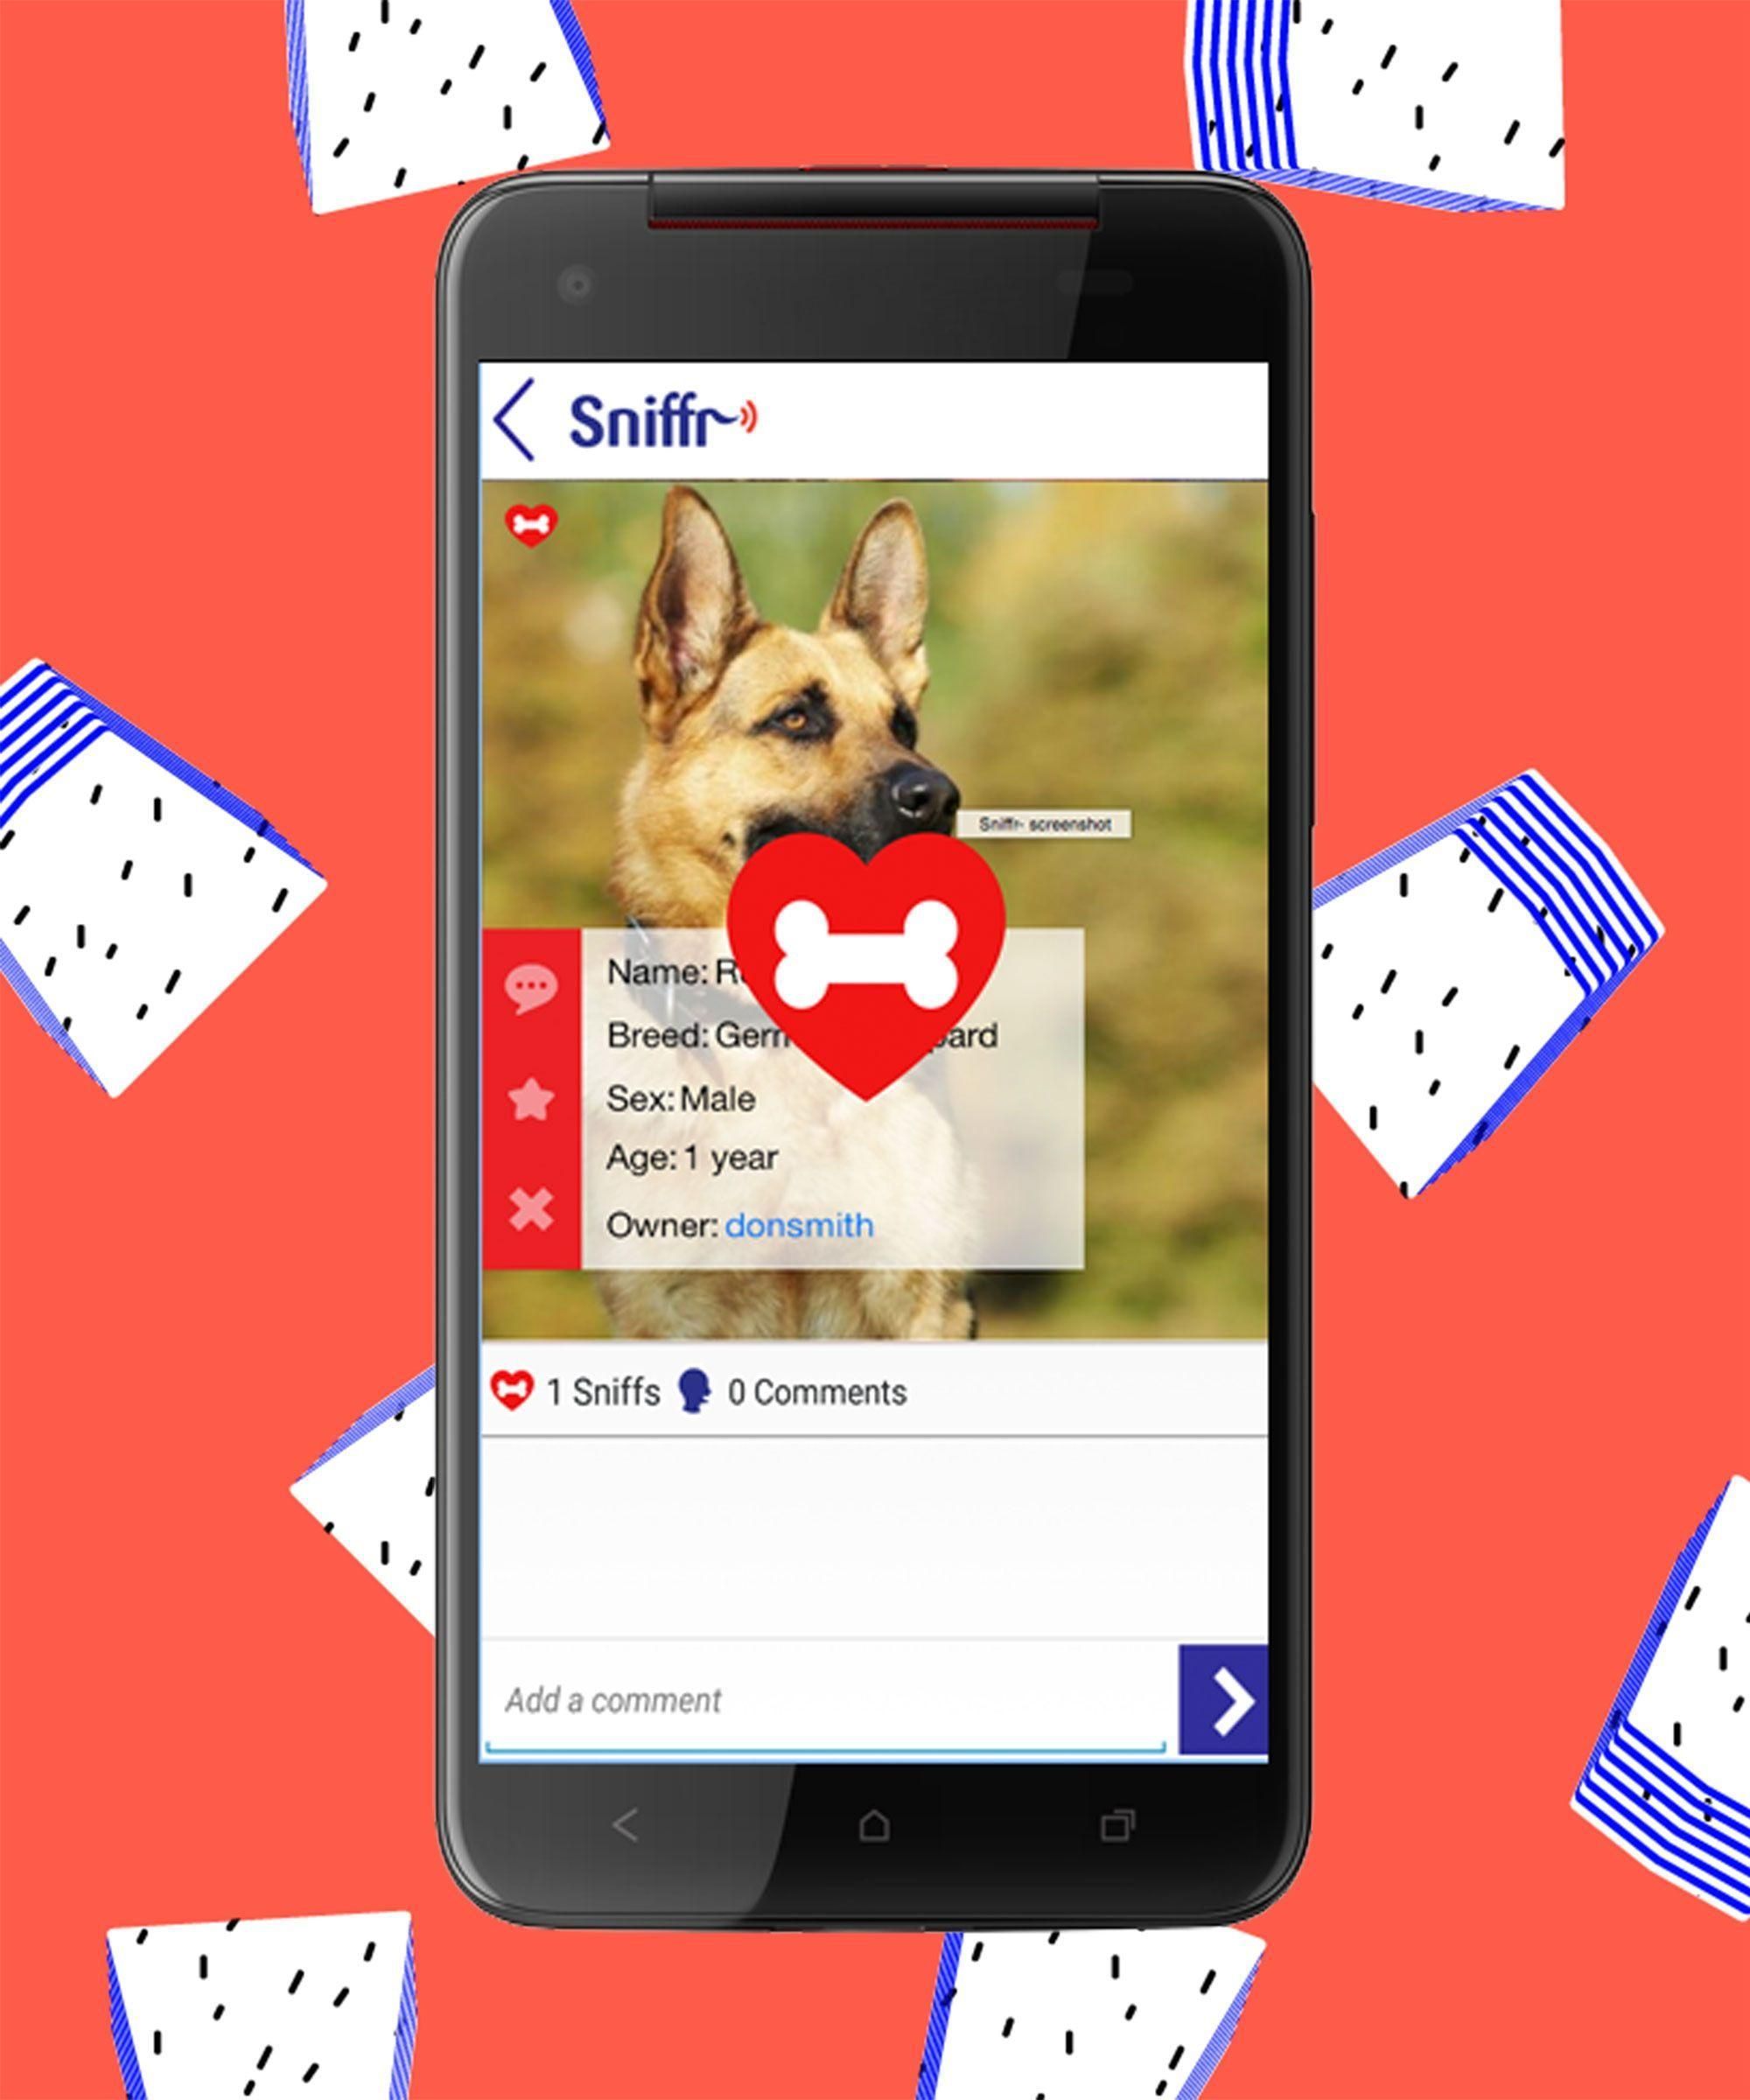 Theres A Tinder For Everything Now | News apps, Tinder, App